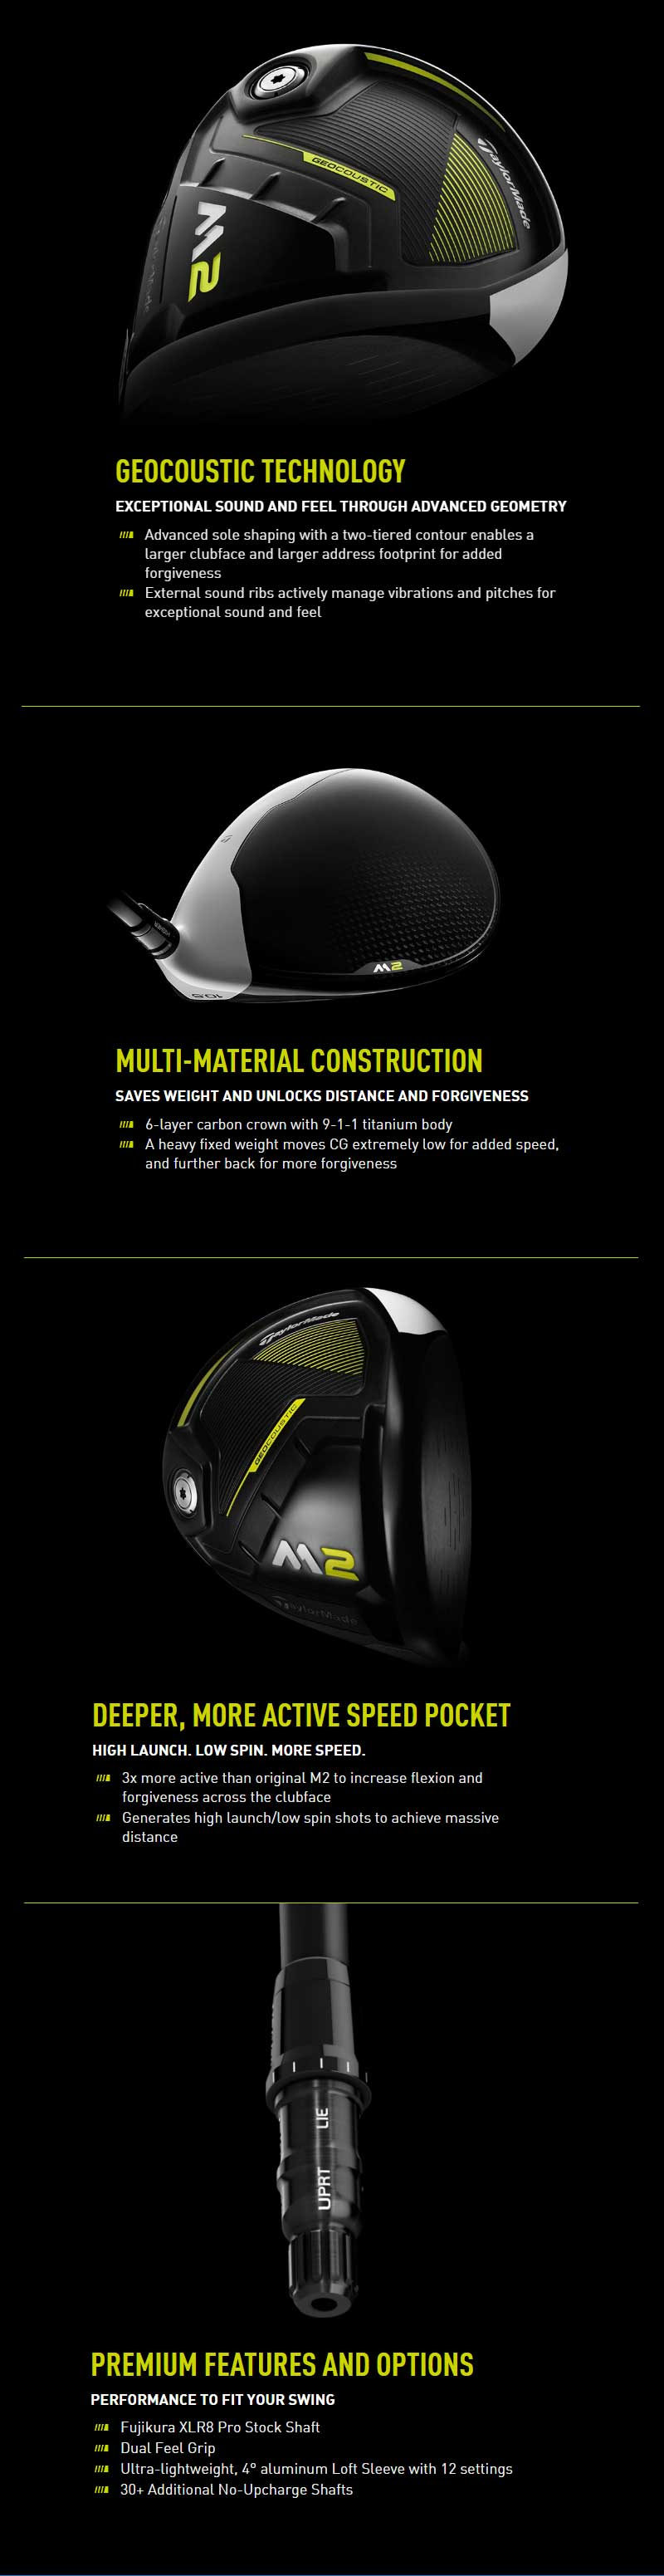 Taylormade New M2 Drivers